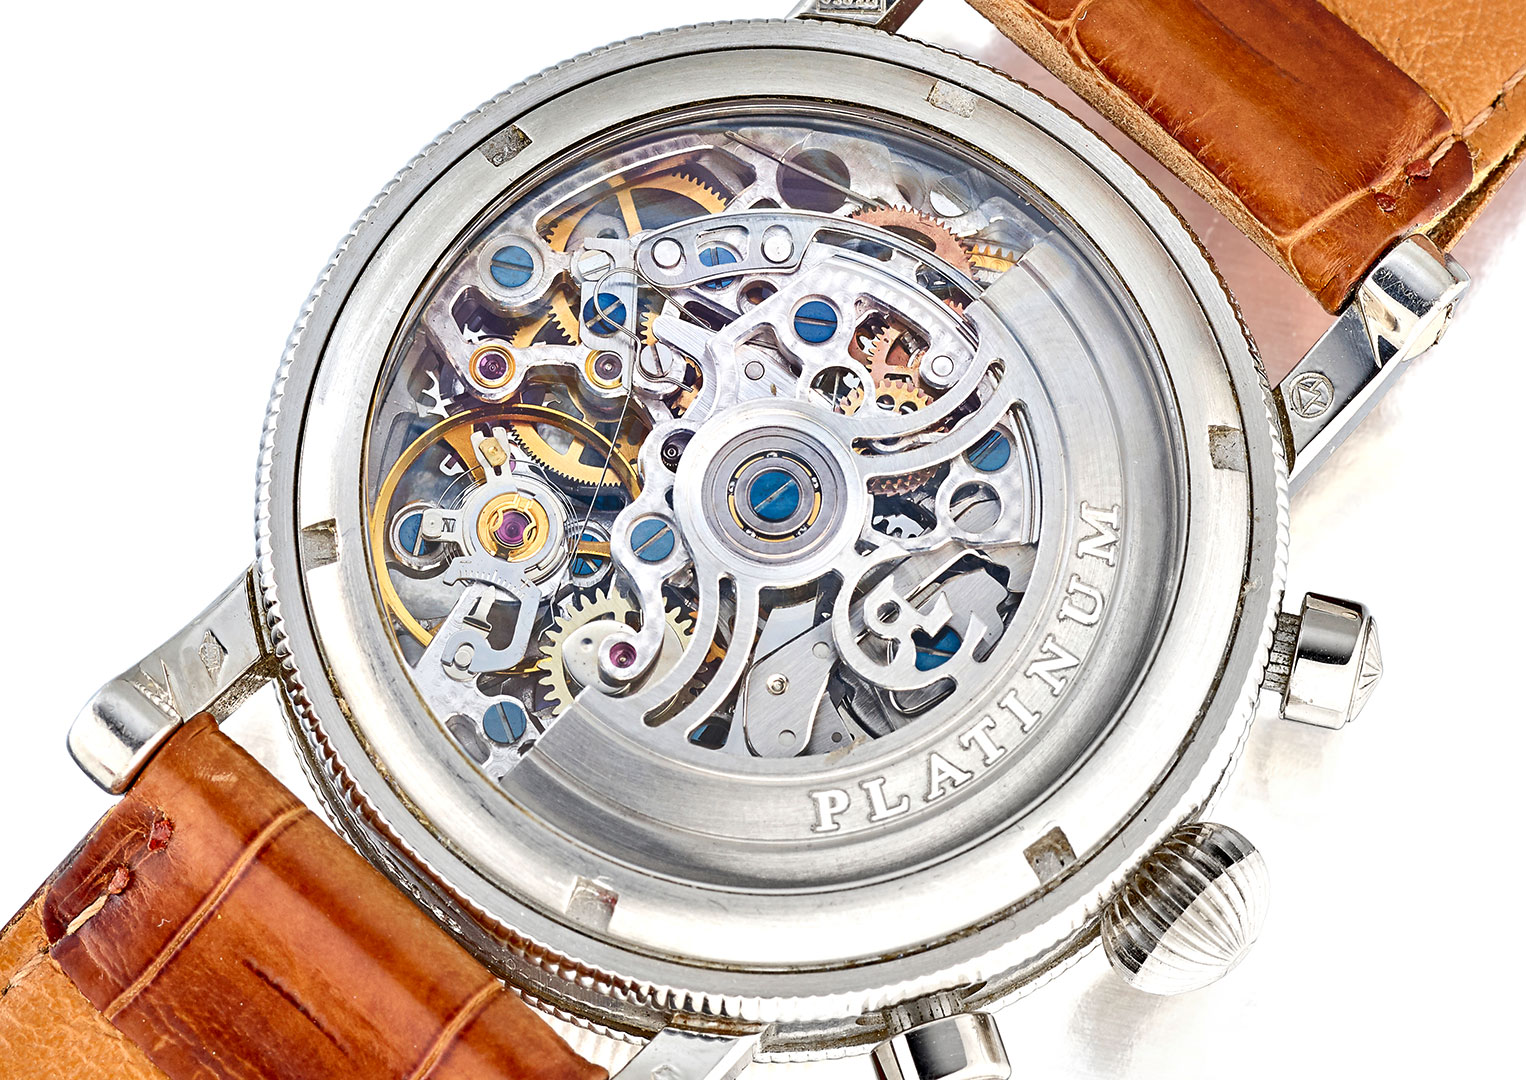 A modified Valjoux Calibre 7750 seen through the exhibition caseback of a Chronoswiss watch